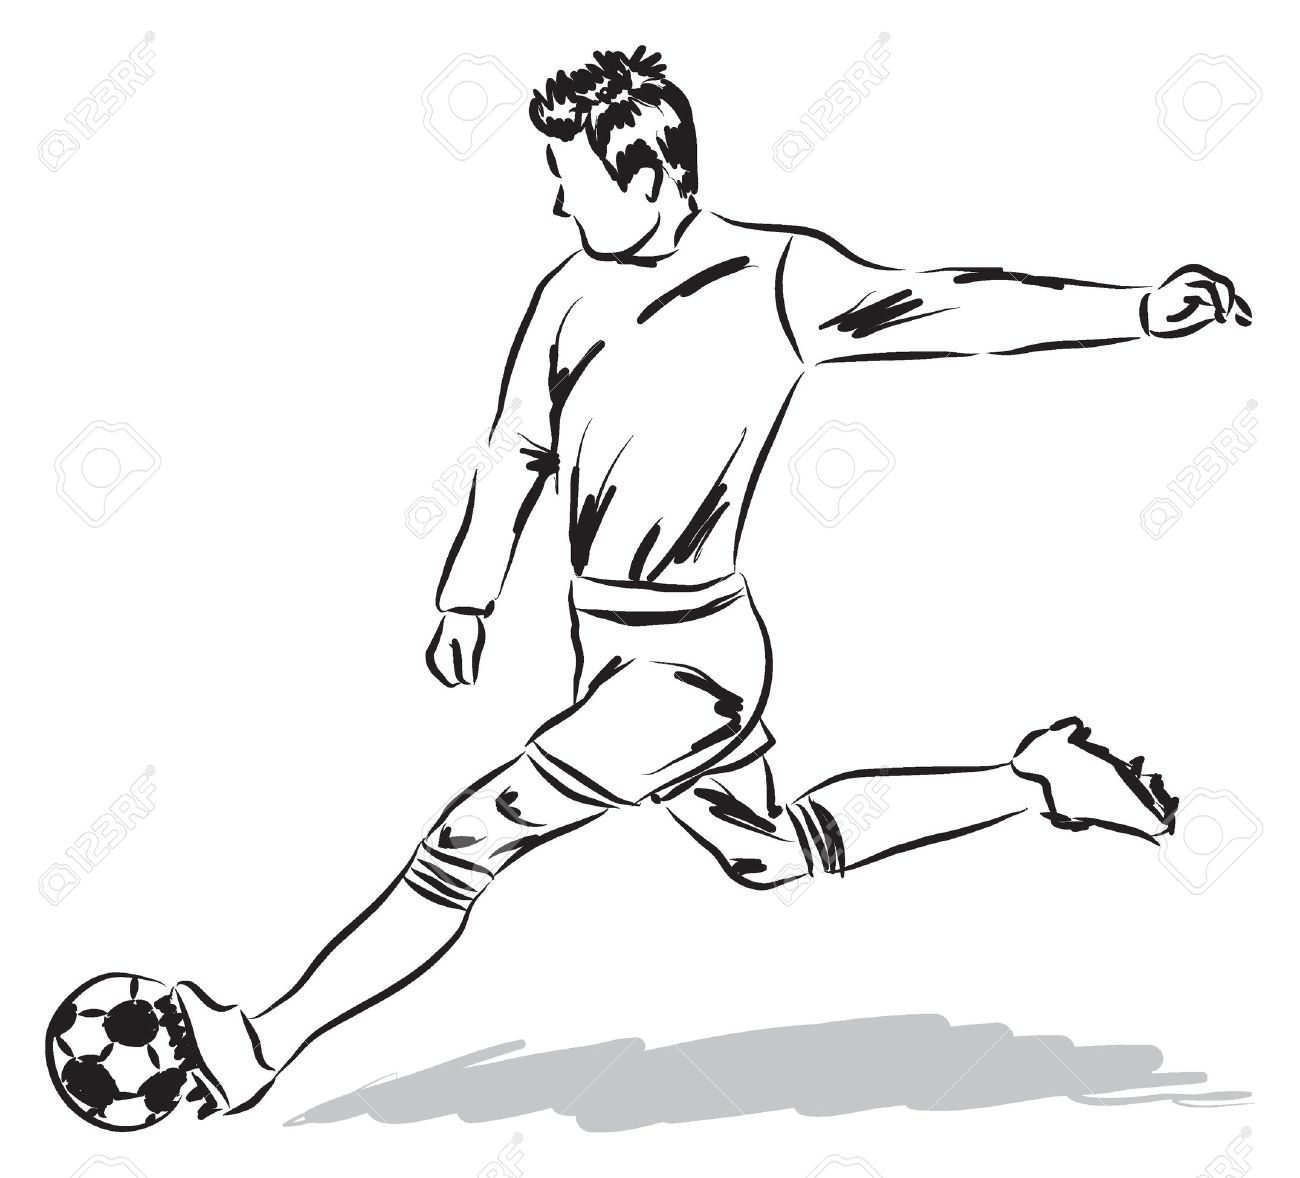 1300x1178 Drawings Of Soccer Players Free Football Software Erd In Dbms